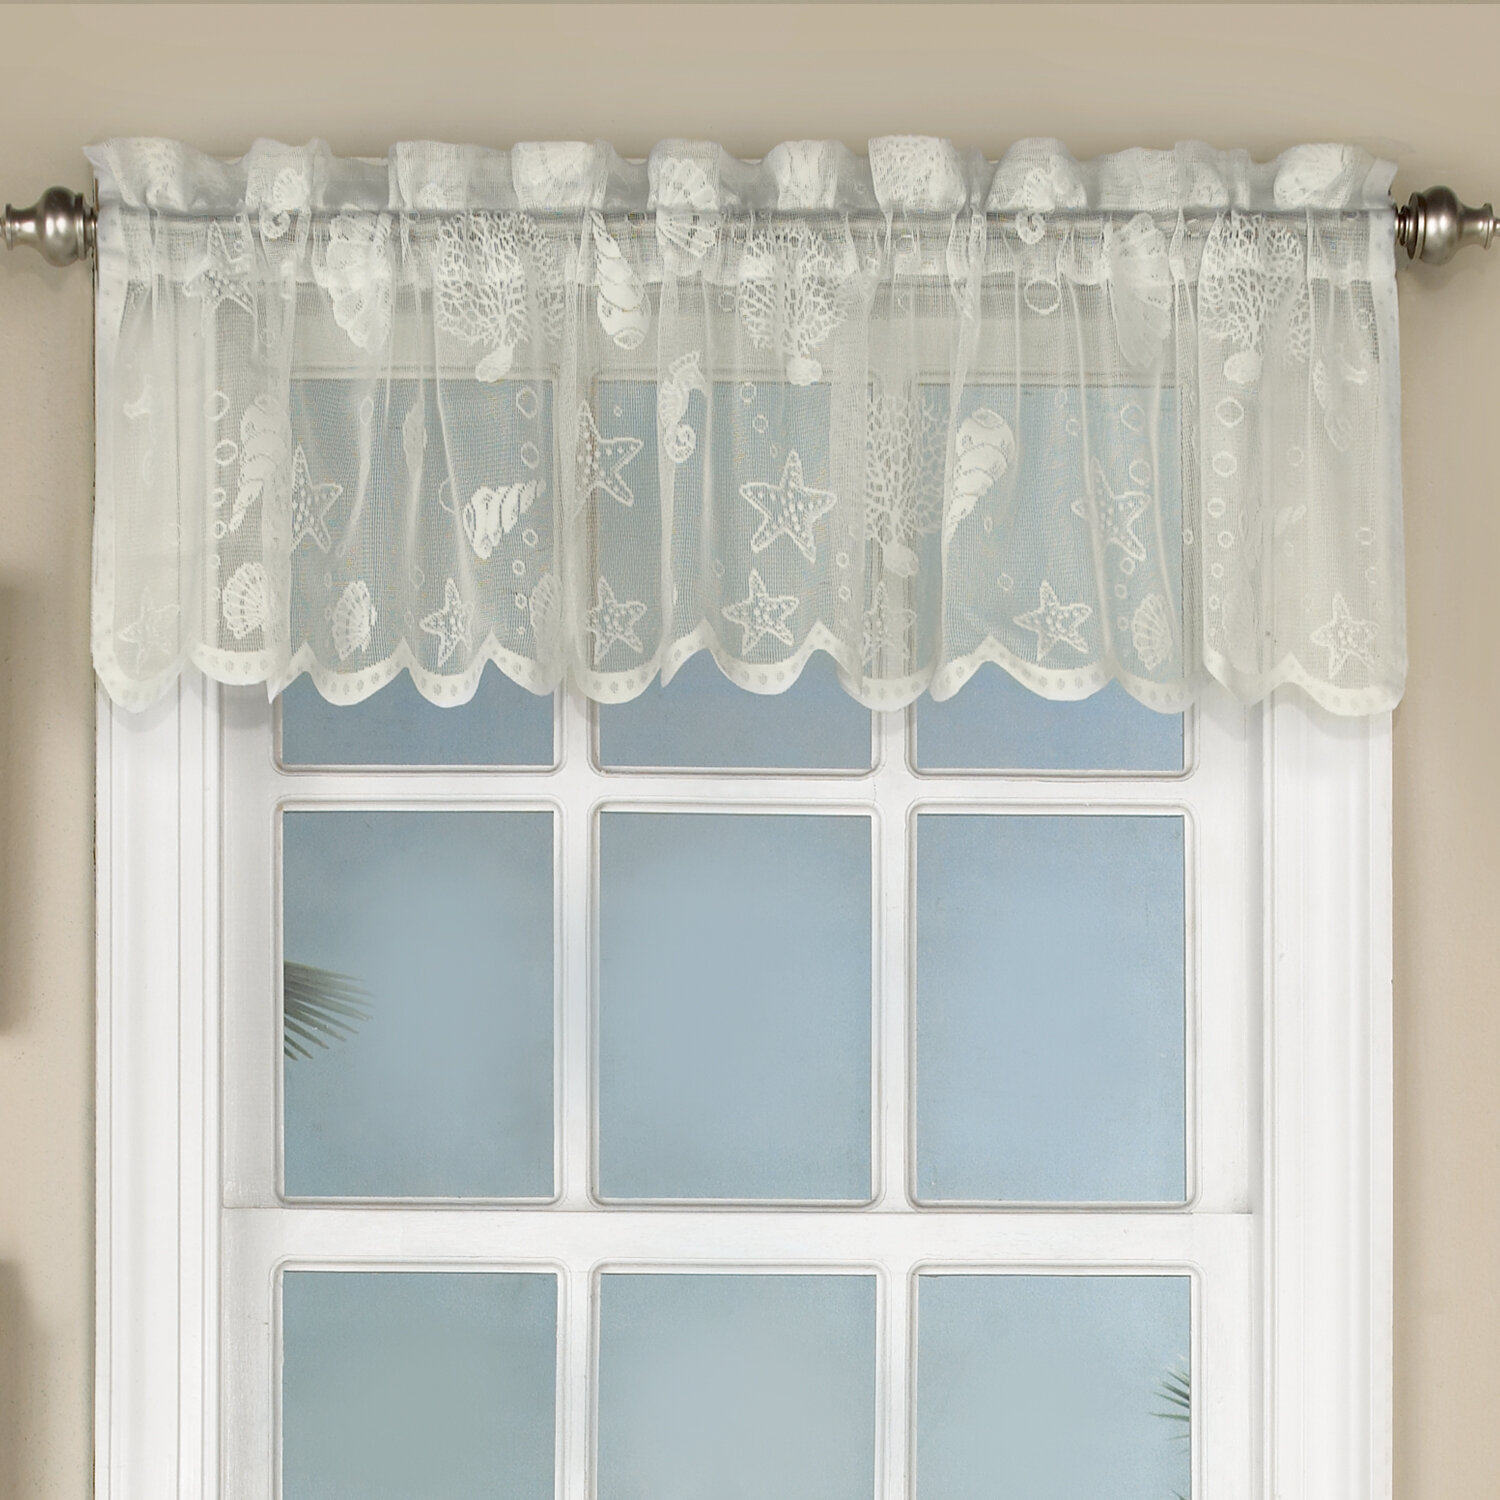 Highland Dunes Trinh Knitted Lace Kitchen 56 Window Valance Reviews Wayfair Ca